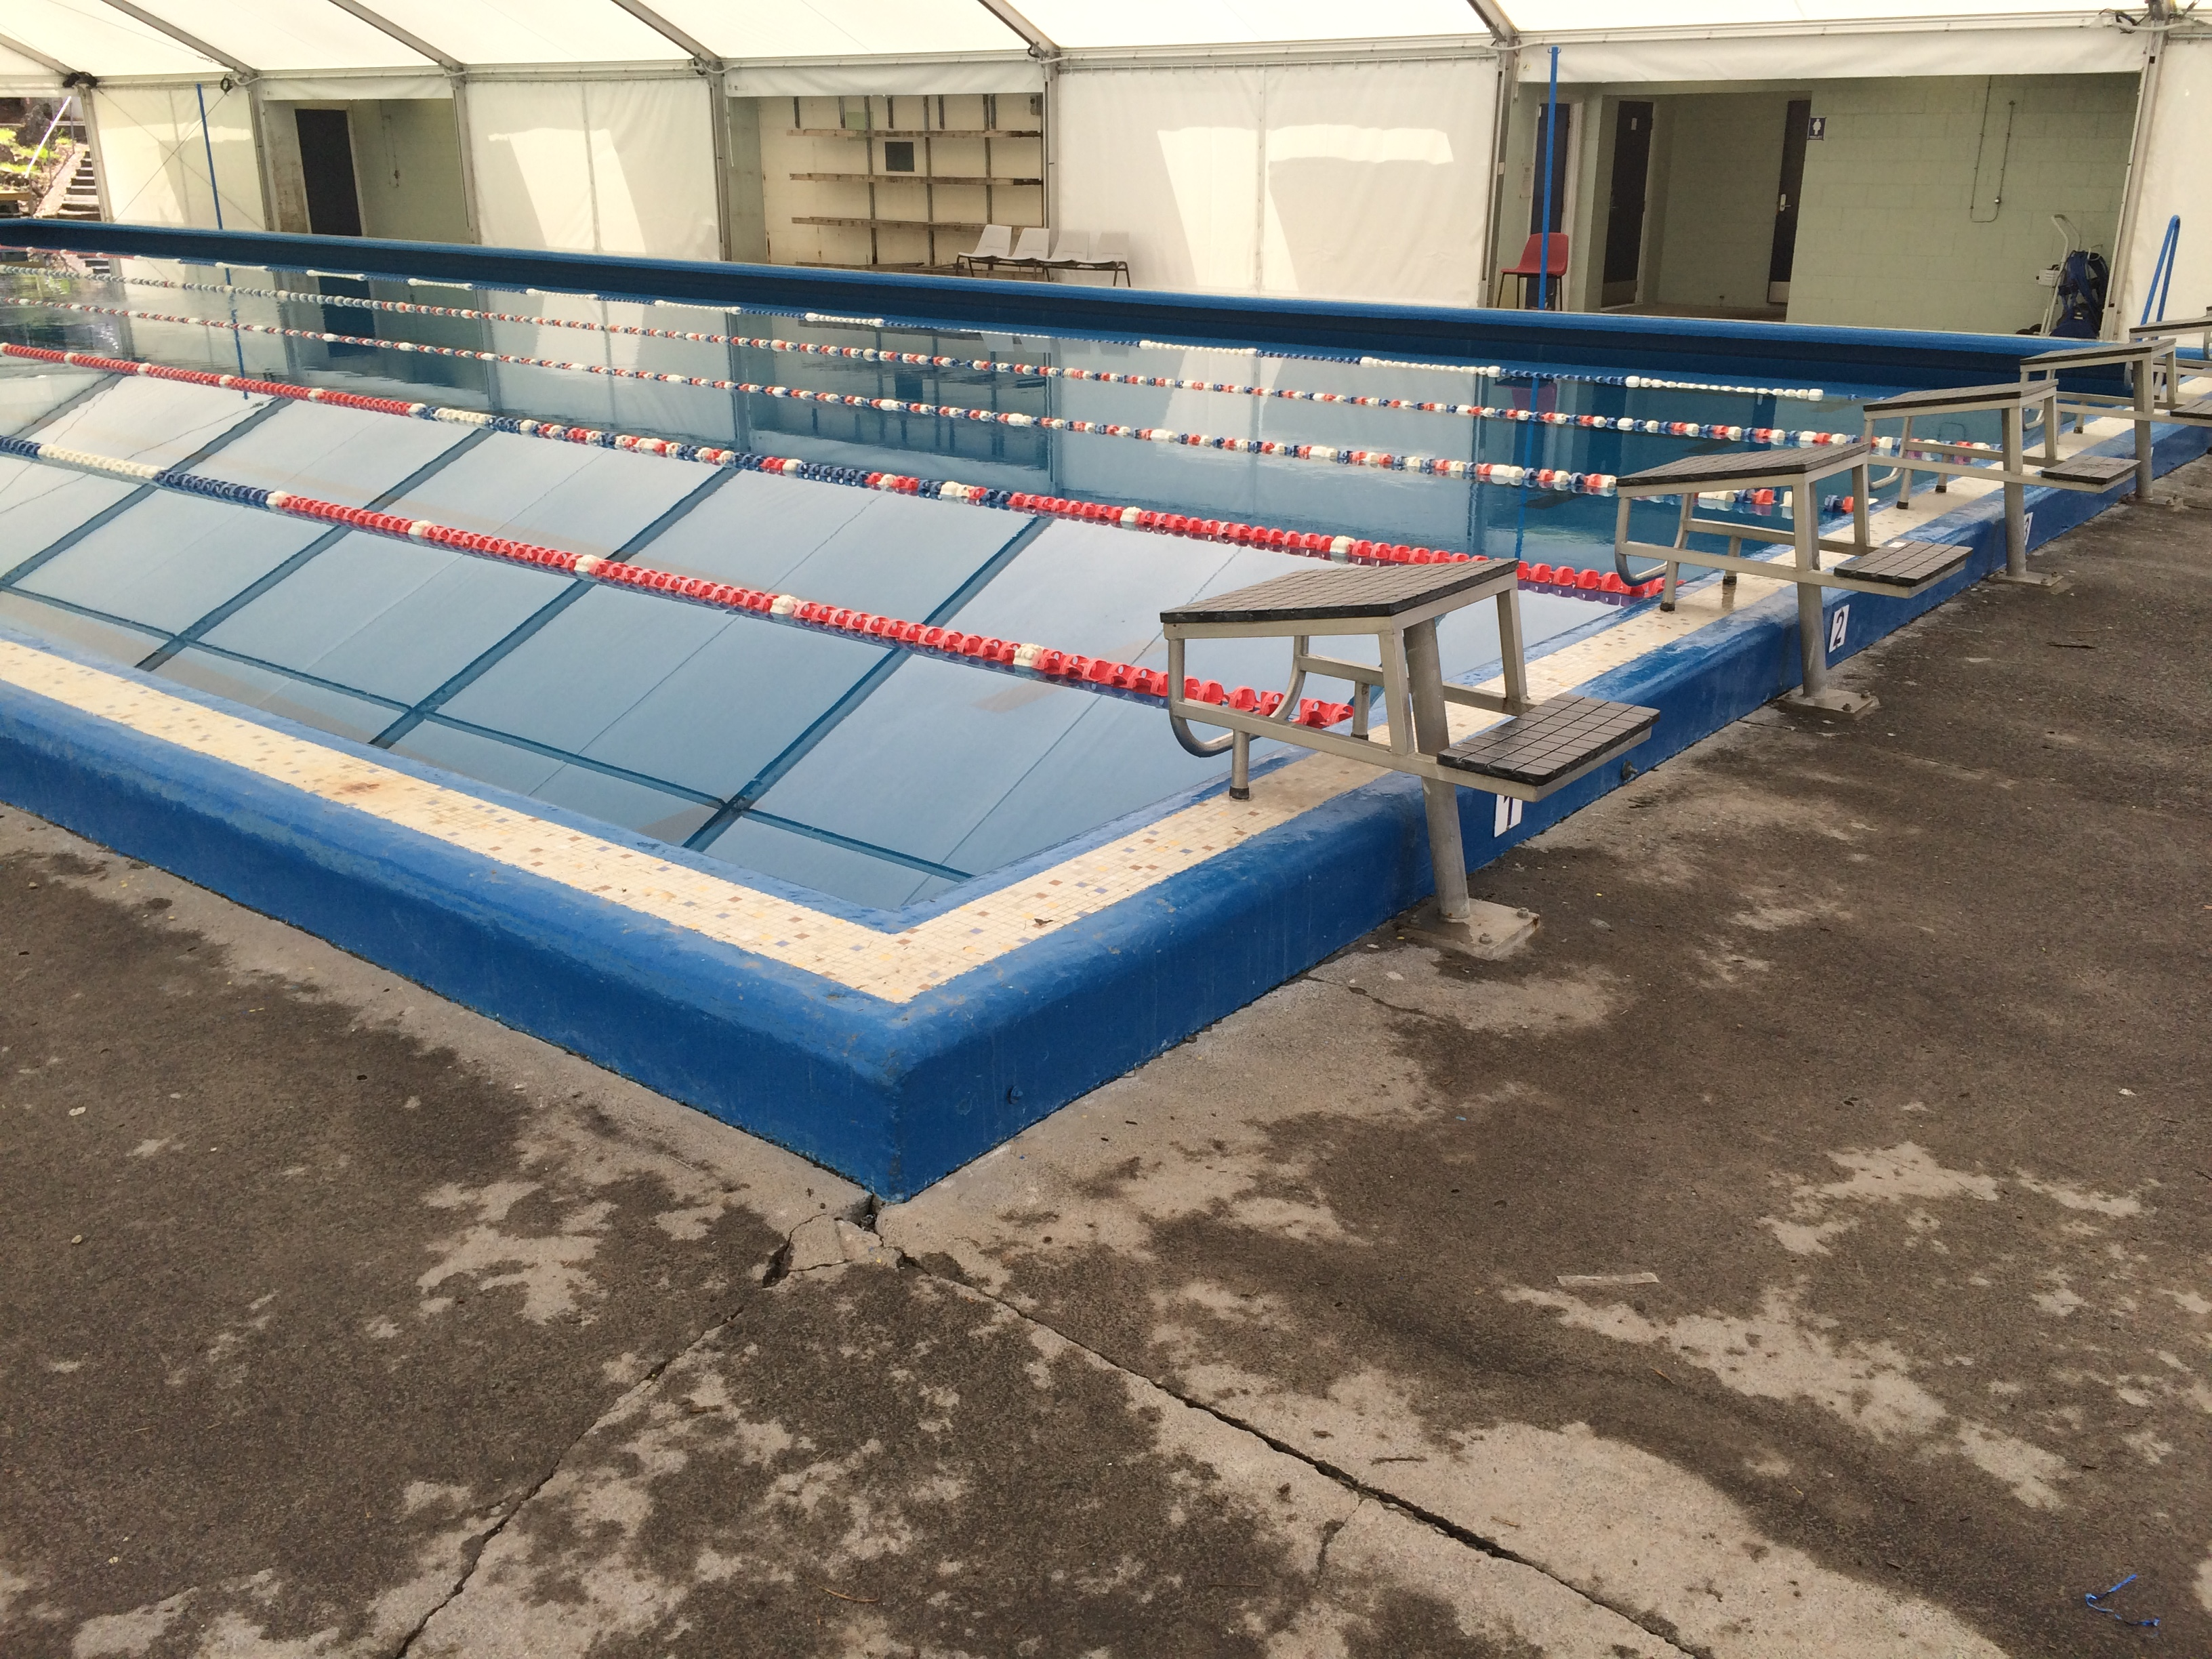 Northcote College Swimming Pool Condition Assessment Grant Application Watershed Aquatics